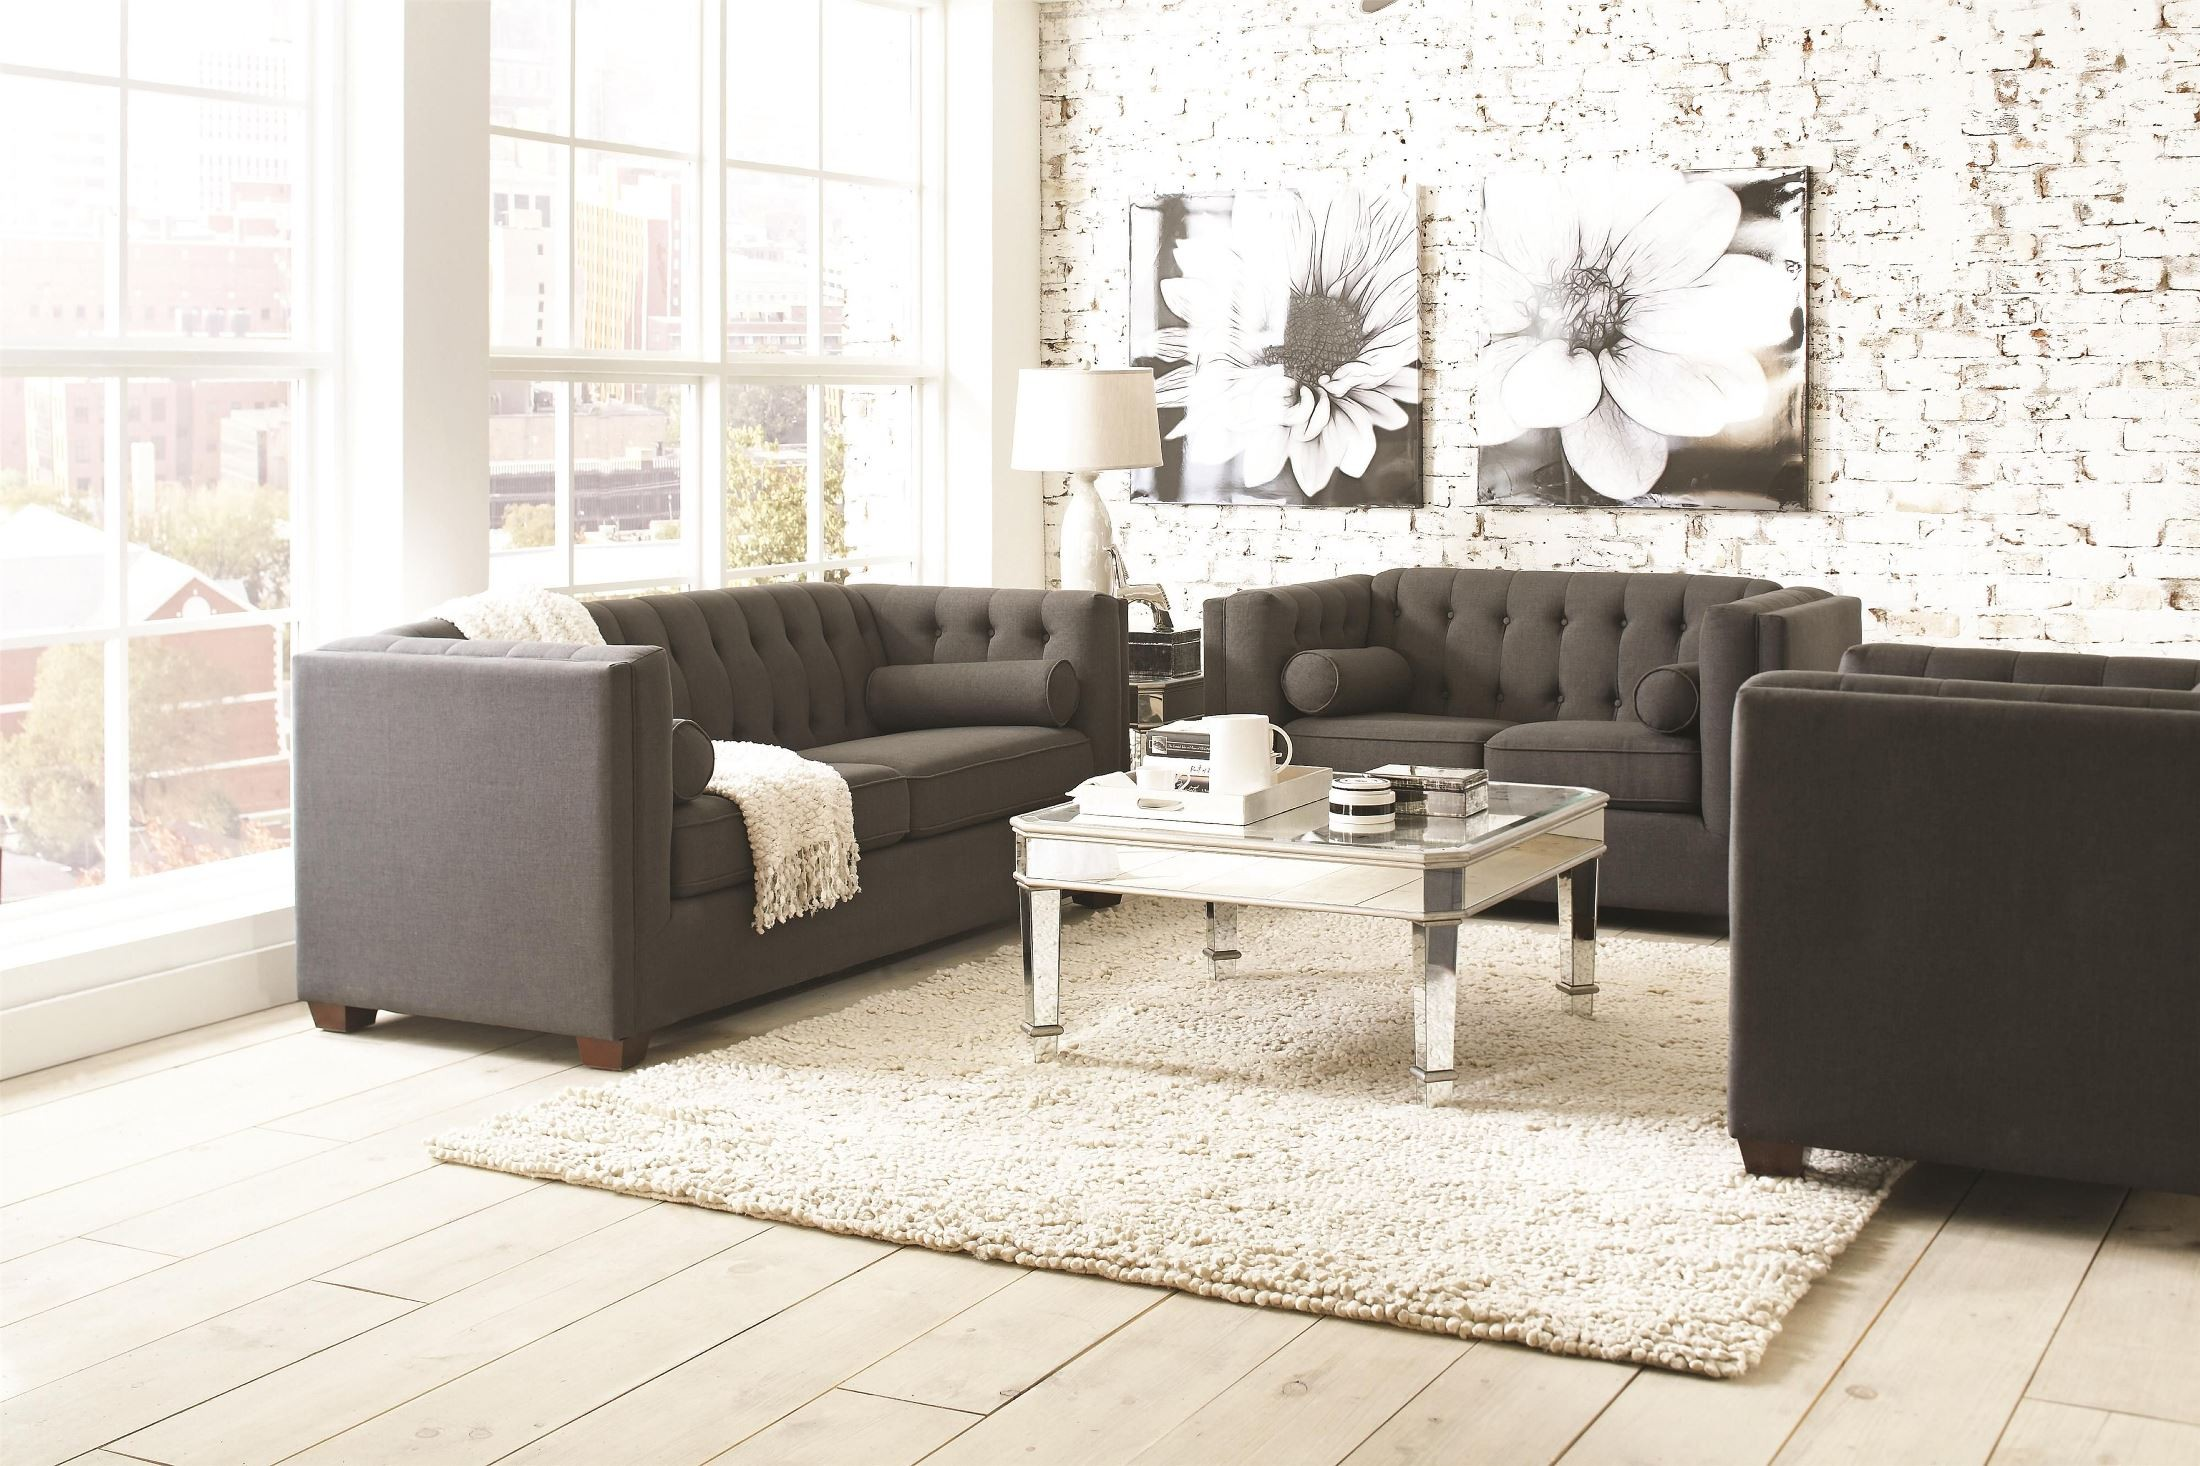 Cairns charcoal living room set from coaster 504901 coleman furniture for Charcoal living room furniture